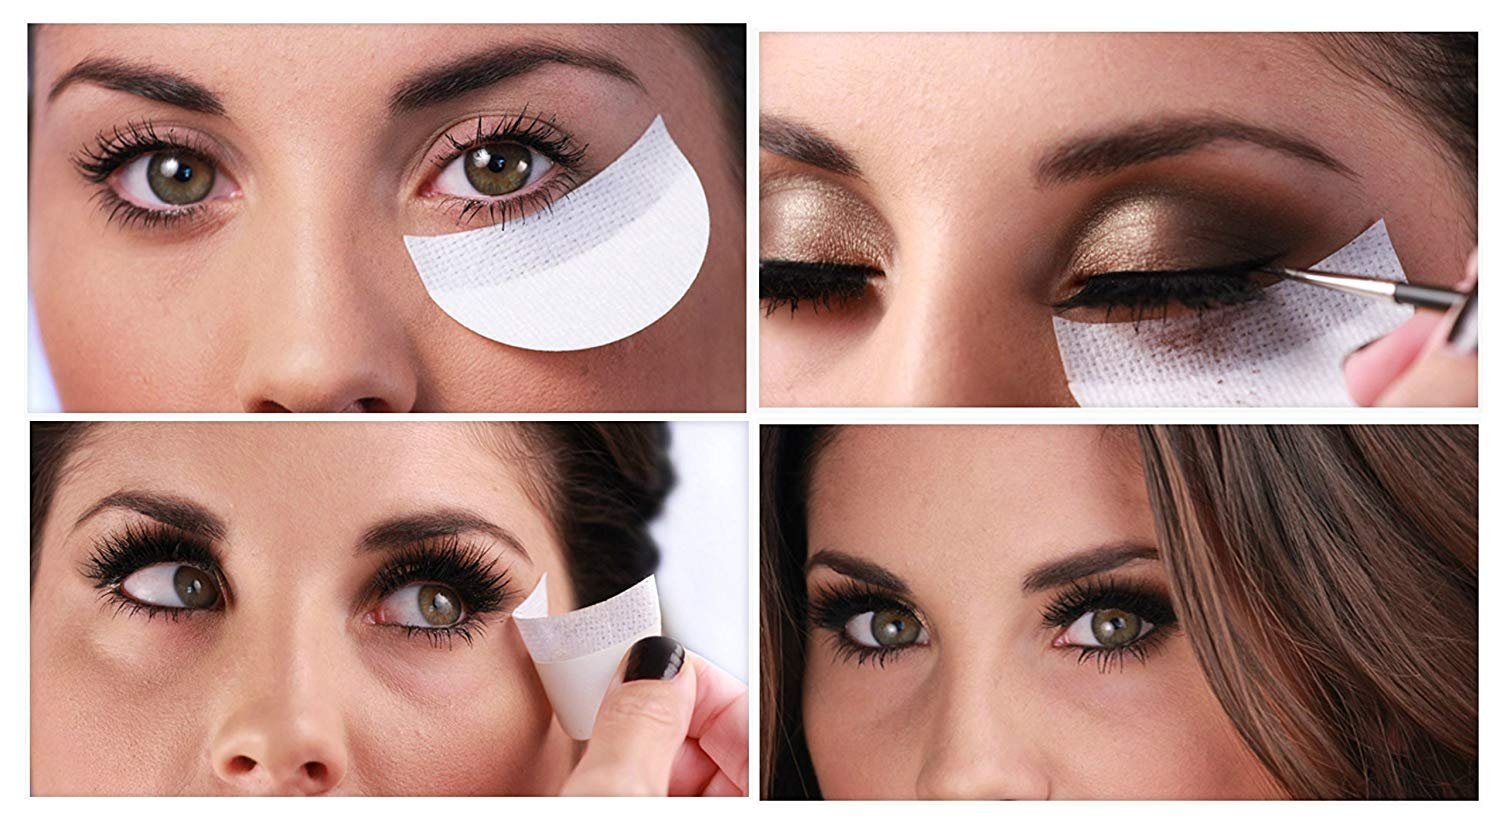 5ba5aed94e7 10 Disposable Under Eye Makeup Strip Beauty Guard Pads Cosmetic Tools:  Amazon.co.uk: Beauty